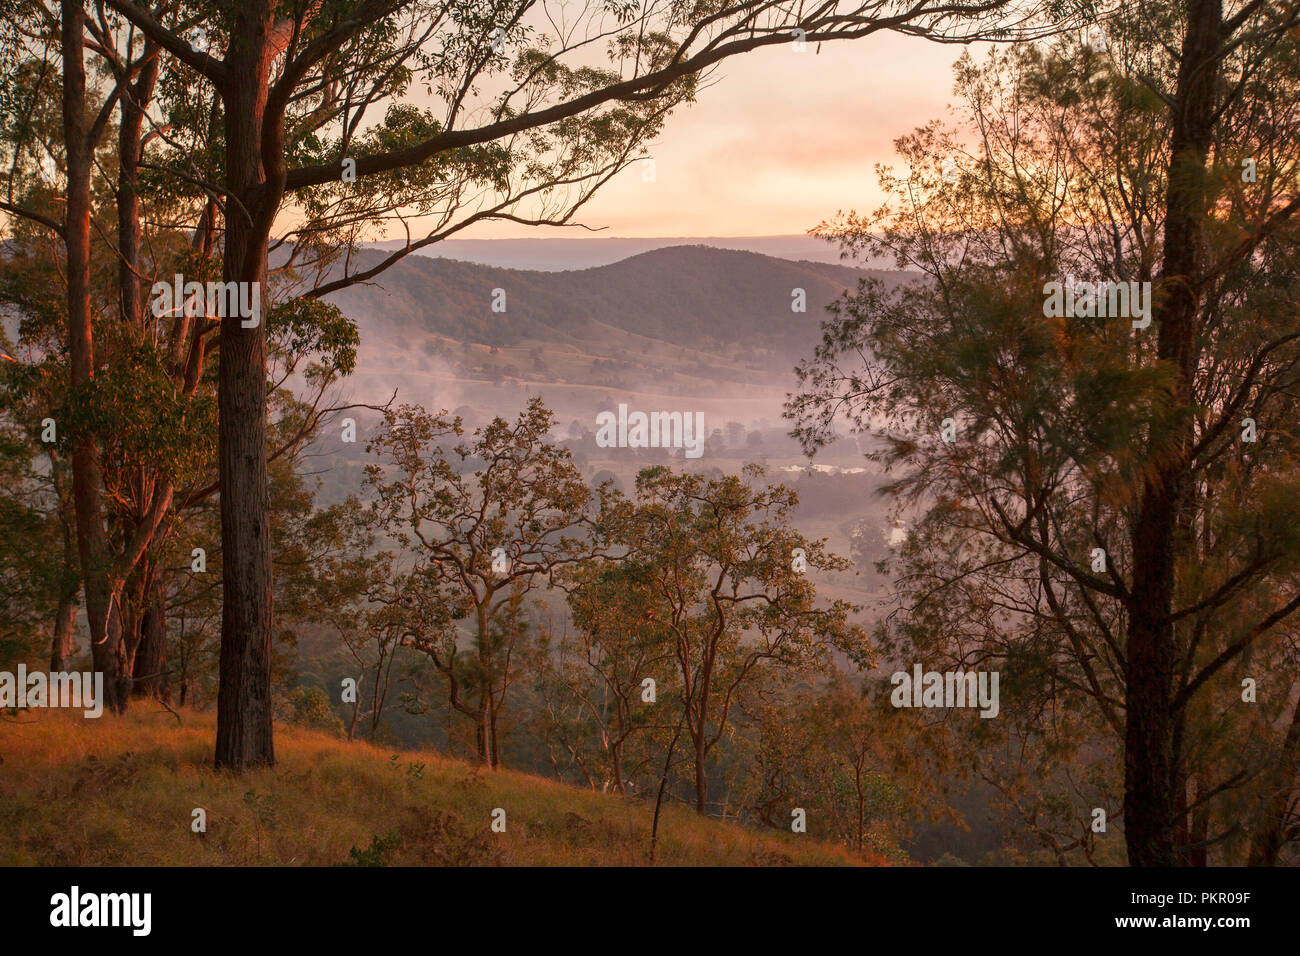 Sunrise with golden sky and mist lying in valley below forest at Tooloom National Park, NSW Australia. - Stock Image